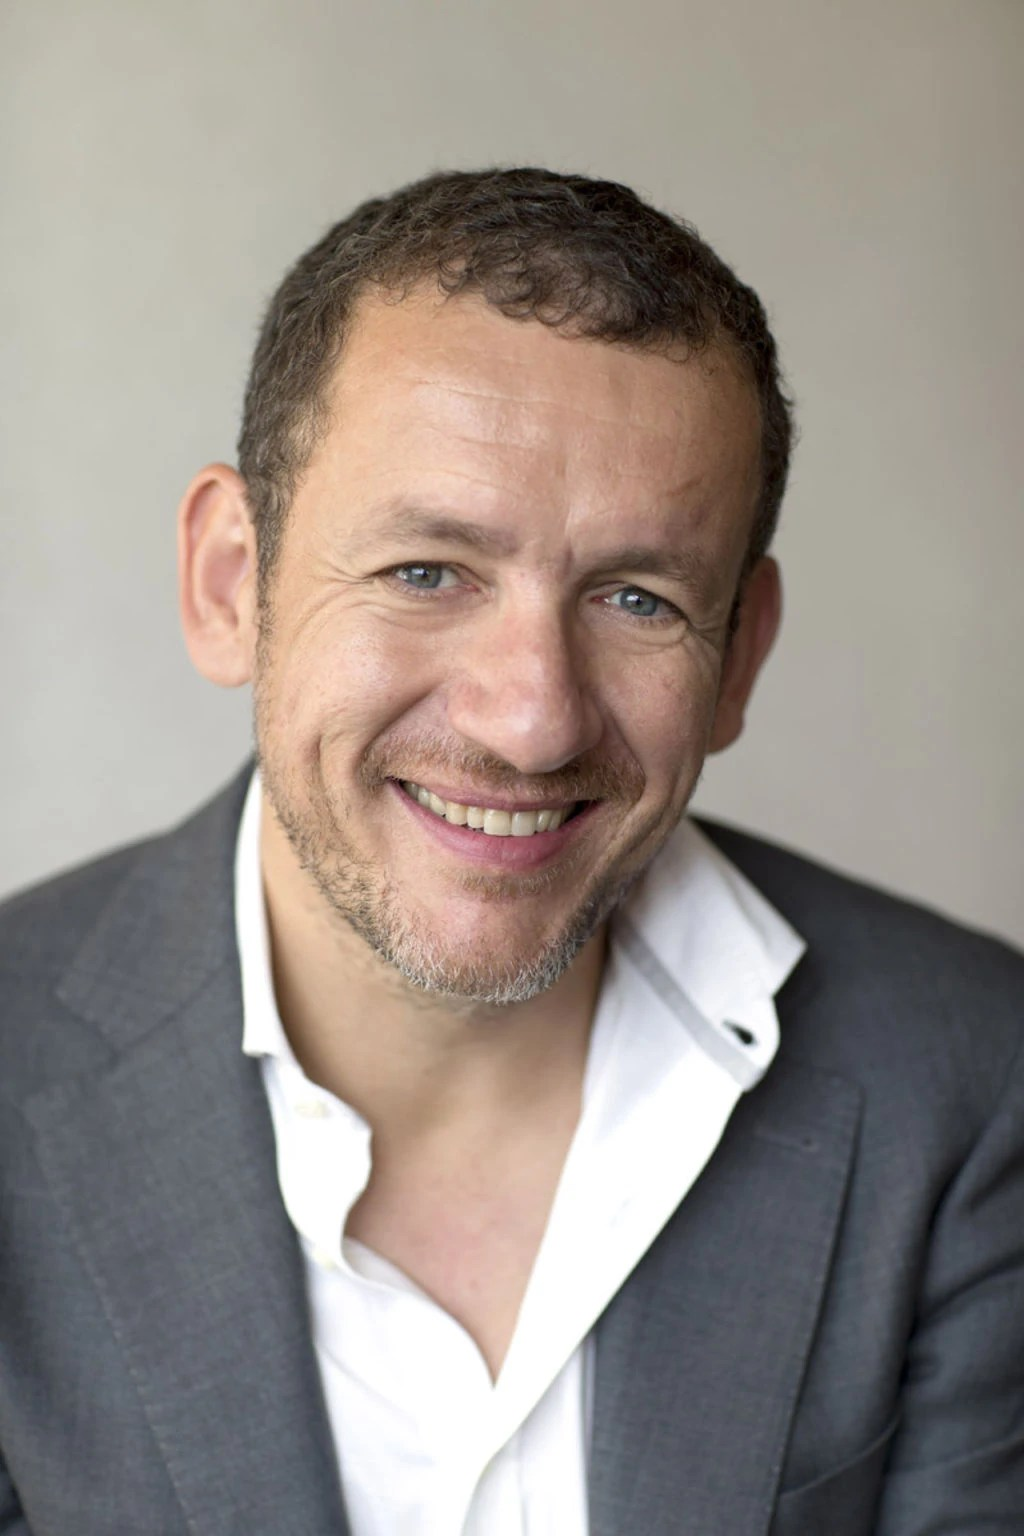 French actor, screenwriter and film director. Dany Boon | Miraculous Ladybug Wiki | FANDOM powered by Wikia